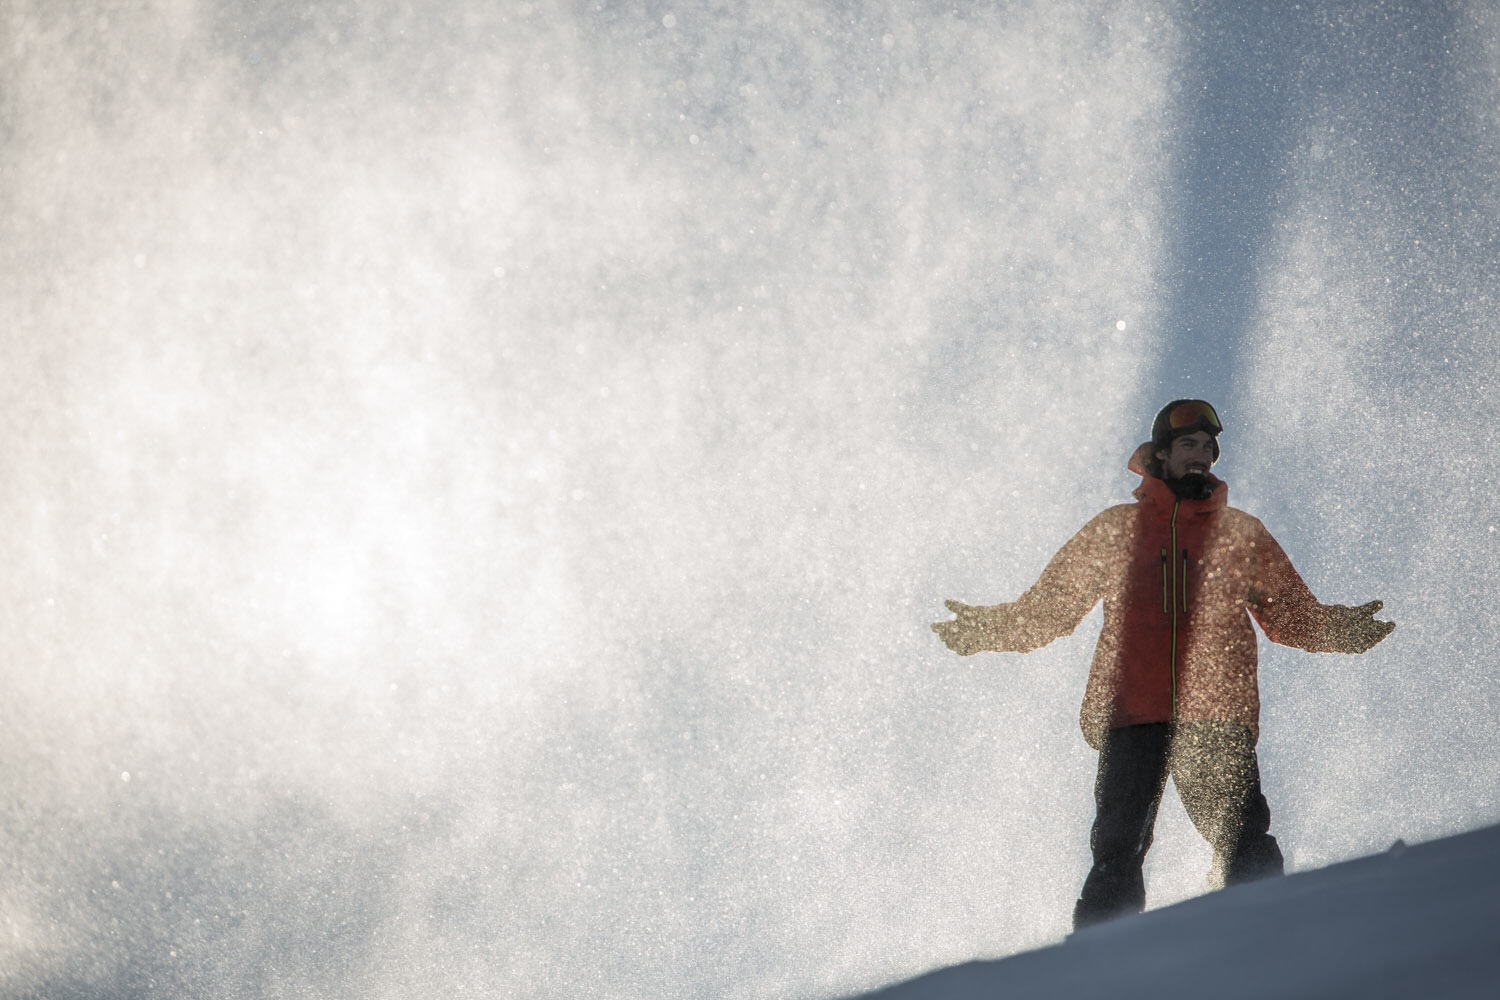 Heliboarder Will Jackways enjoys the recent snow fall